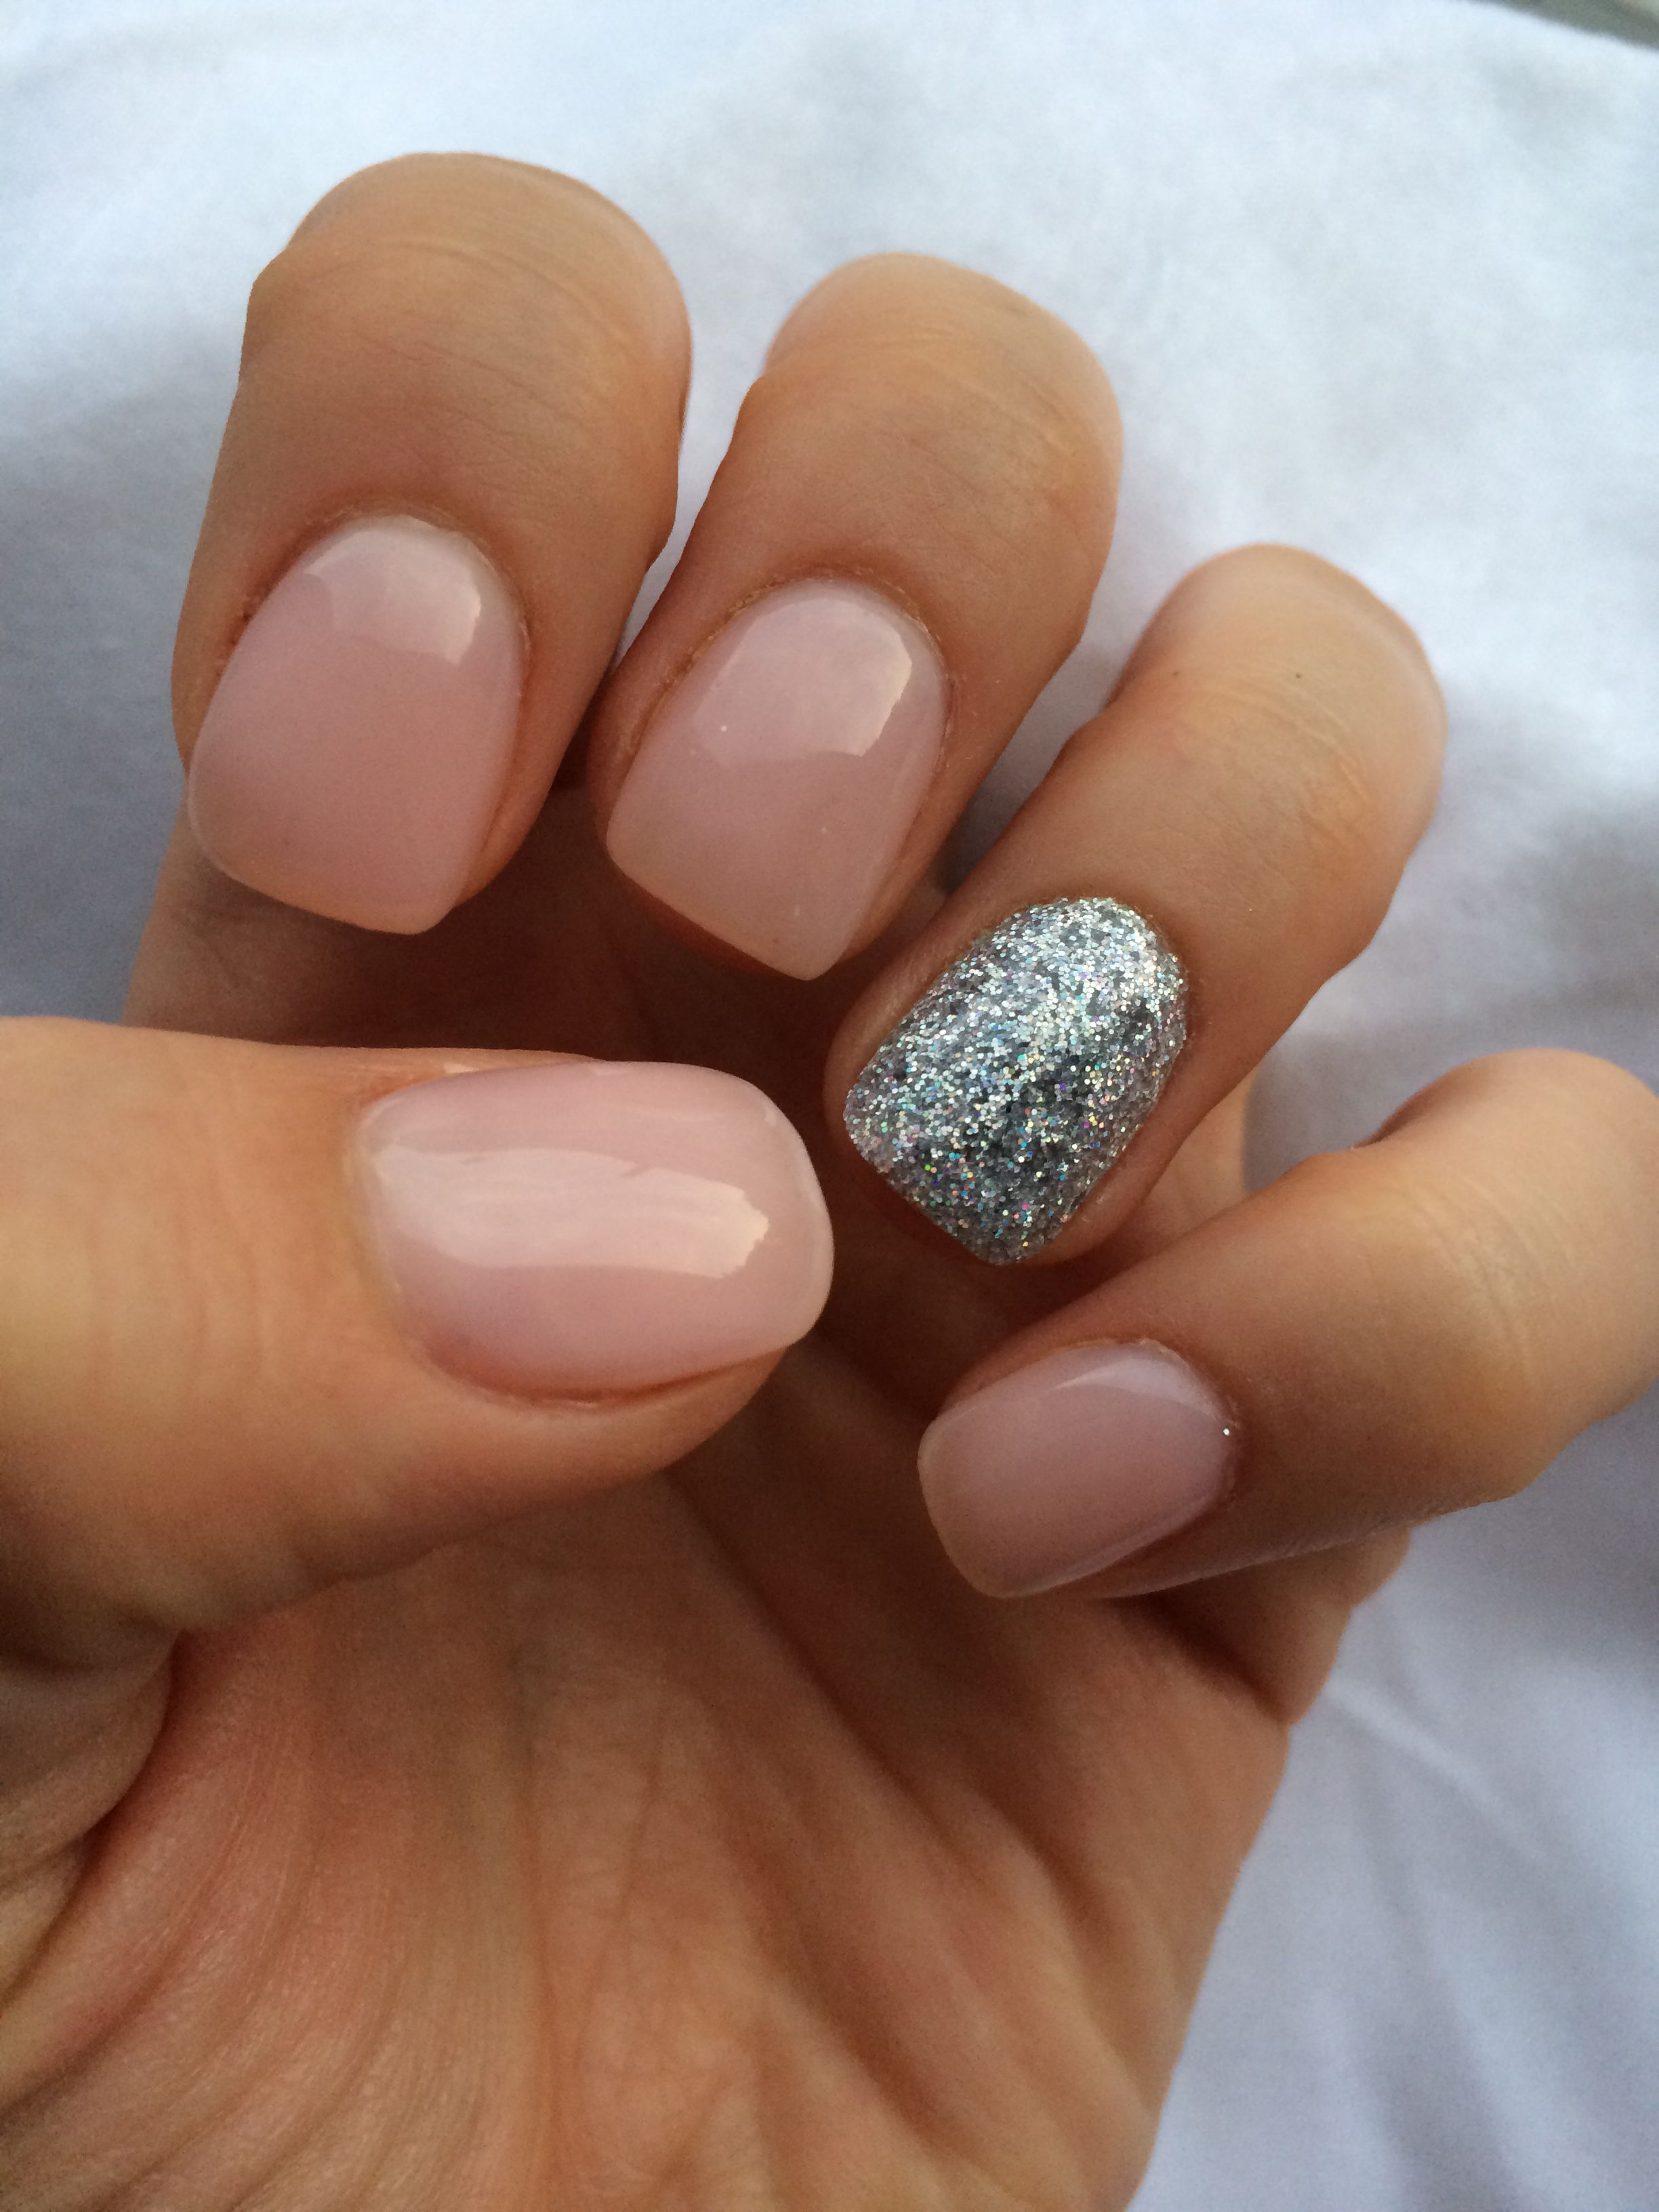 Opi Gel Nail Polish Bubble Bath And A Silver Glitter Accent Opi Gel Nails Gel Nails Nail Designs